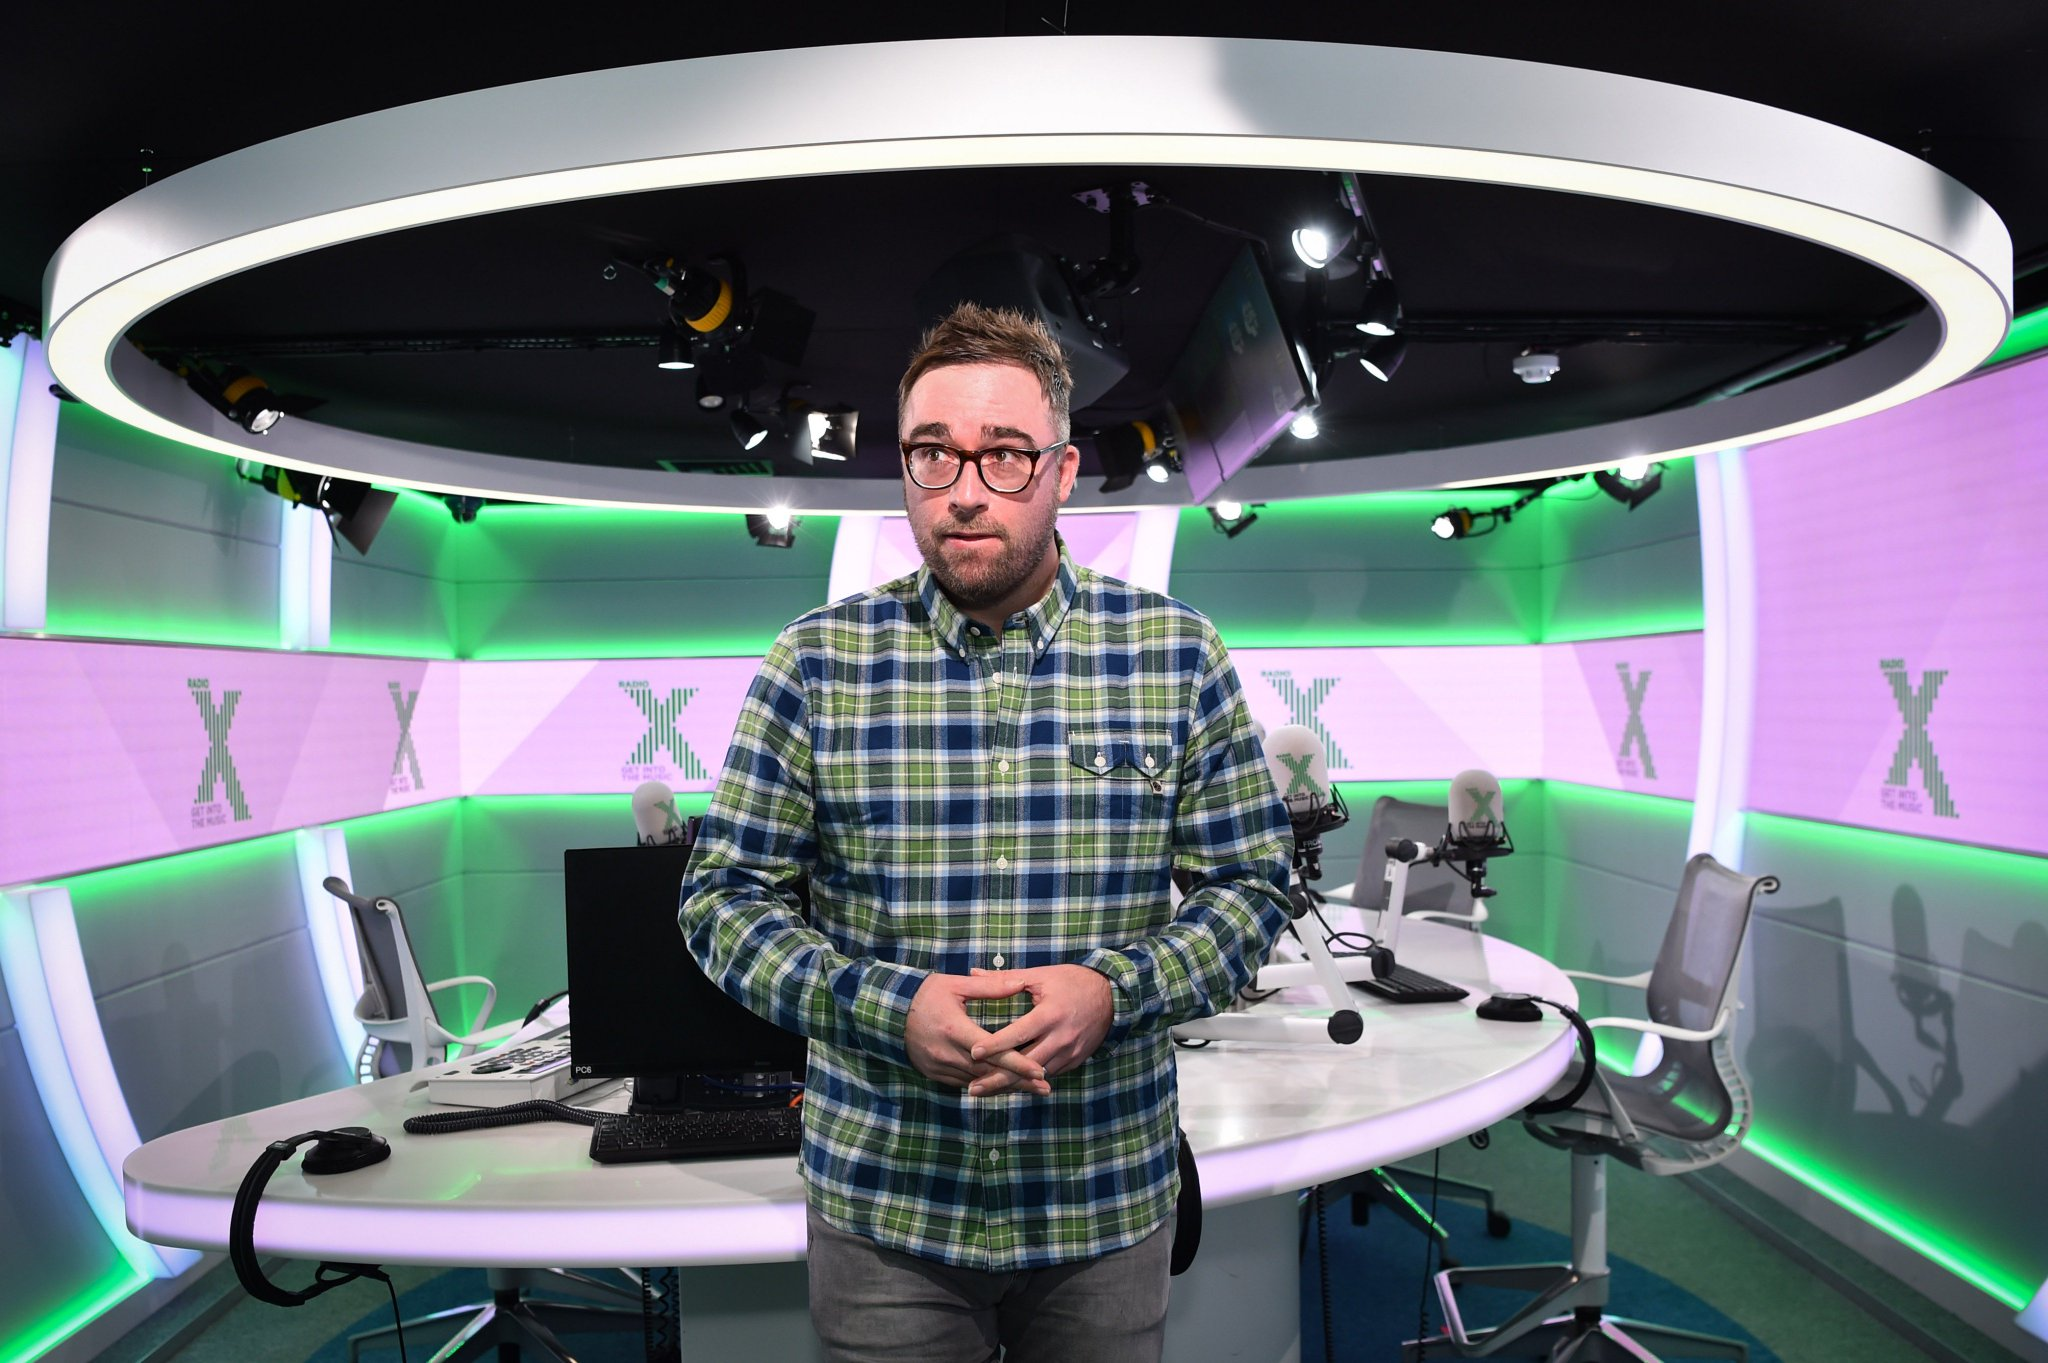 RT @RadioX: It's here! Download the first Important Broadcast from @dannywallace now! 👉 https://t.co/wEMDAr6oYx https://t.co/i817gCfFei